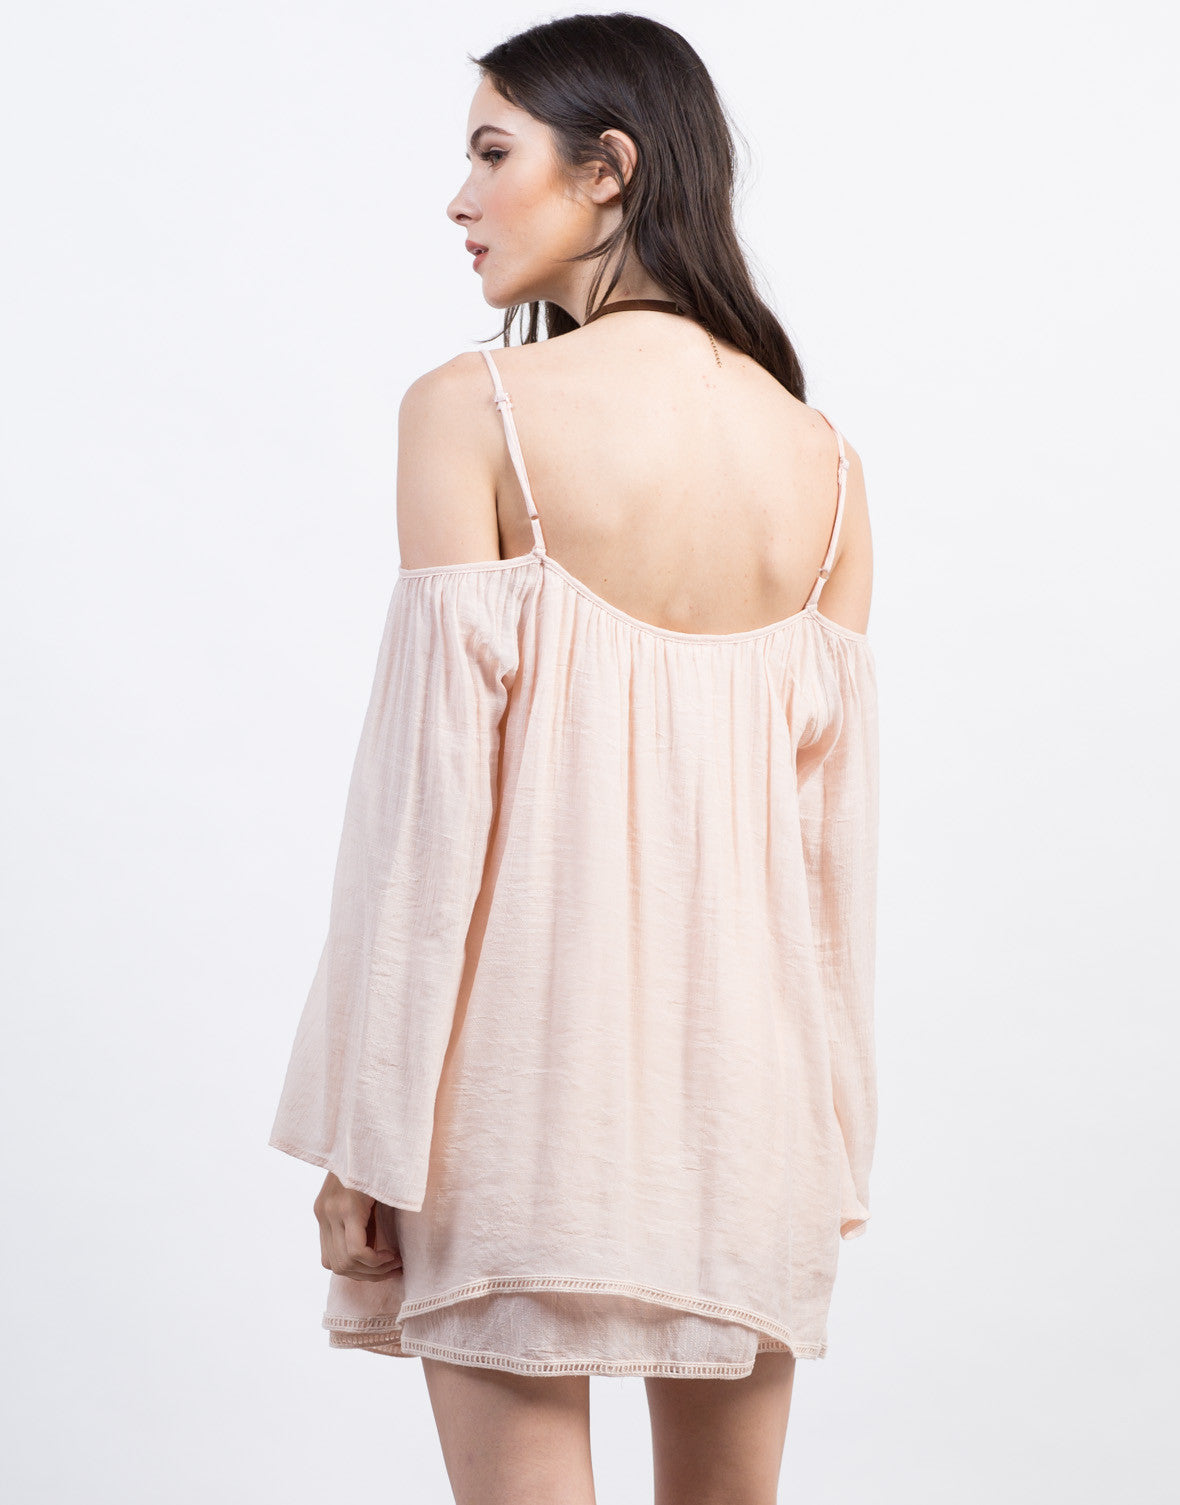 Back View of Peachy Cold Shoulder Dress